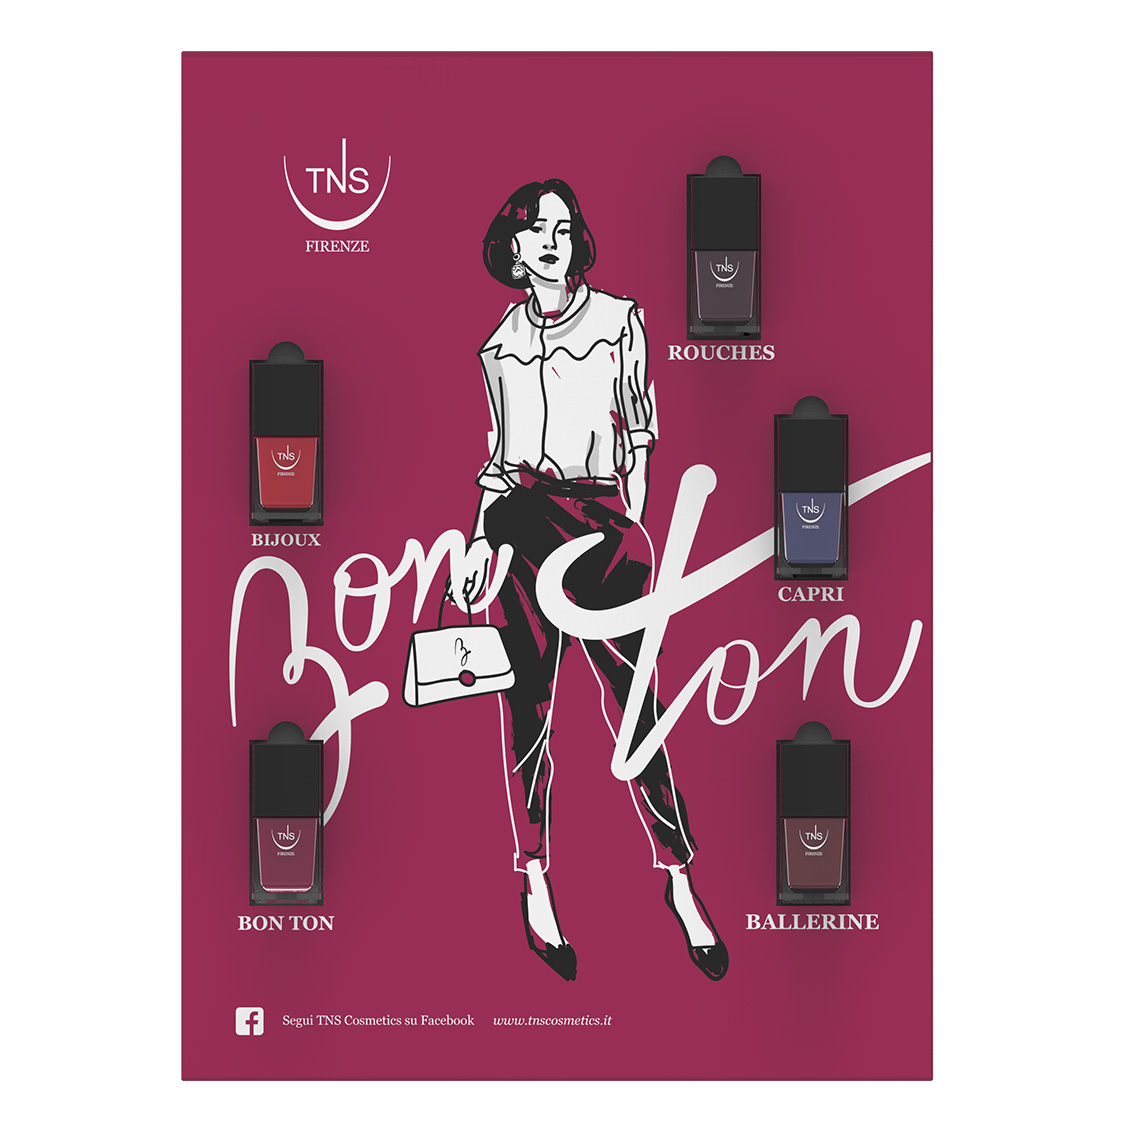 bon ton collection tns firenze